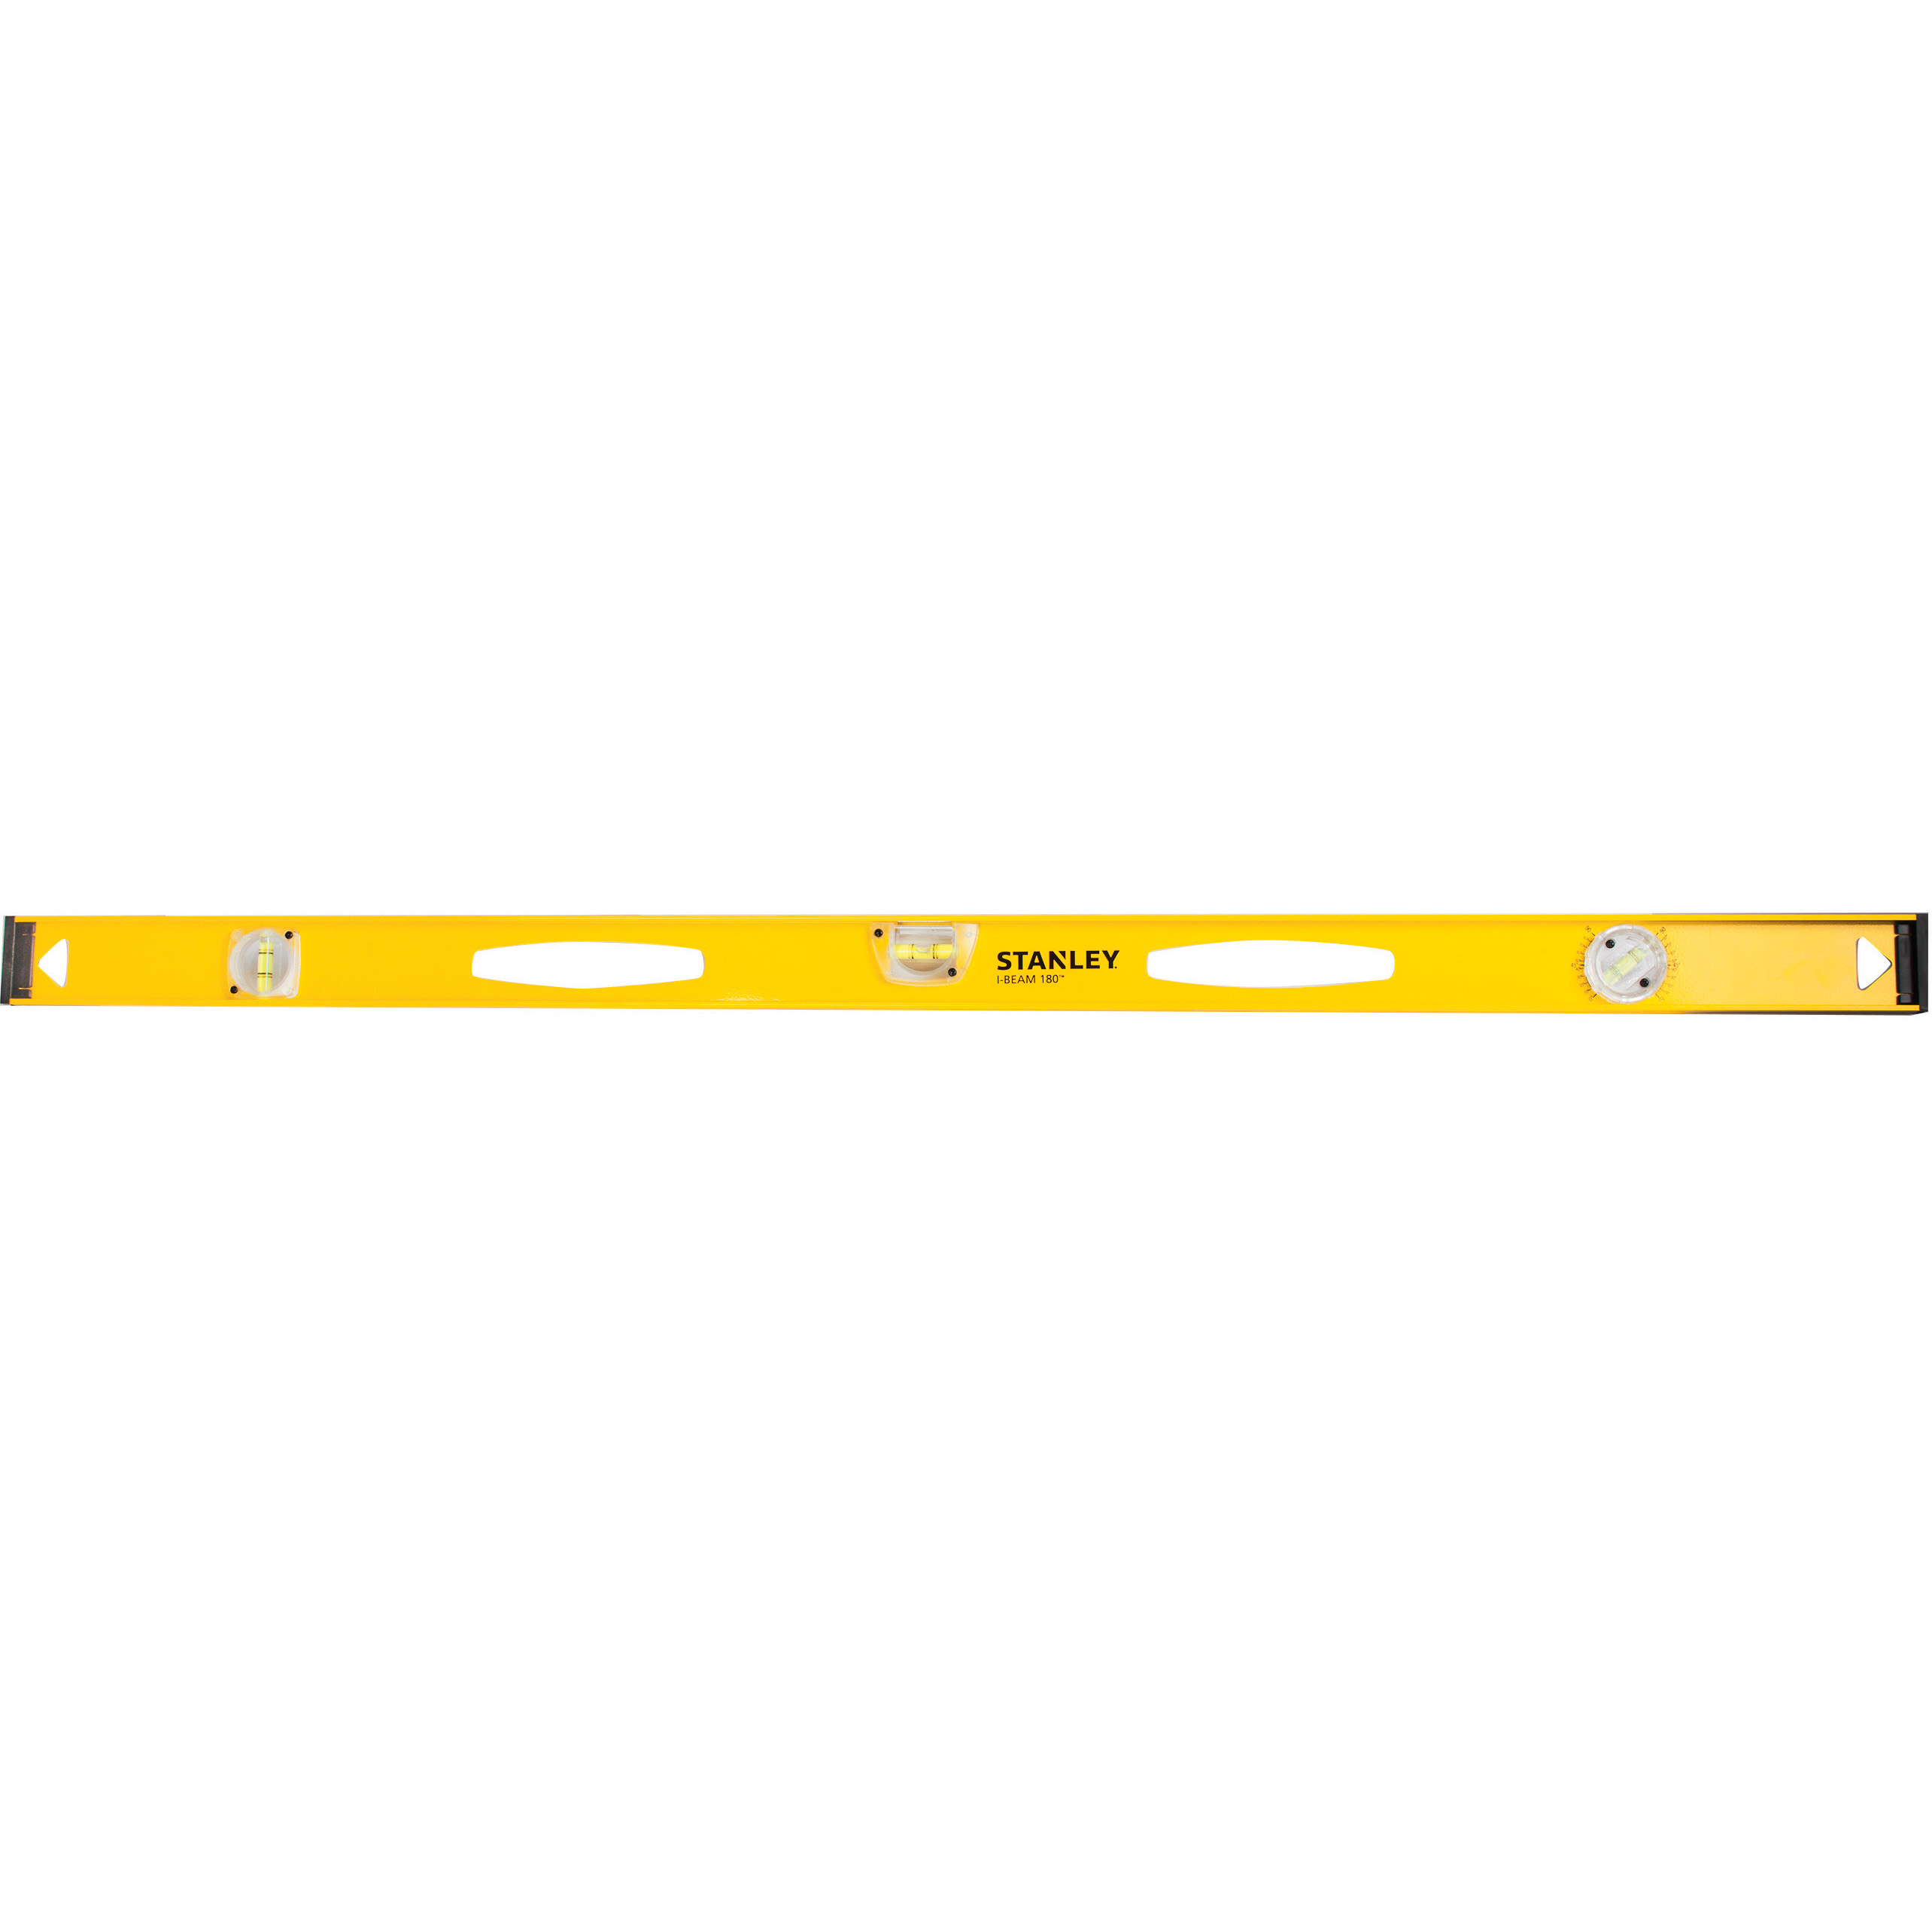 STANLEY 42-328M 48in I-Beam Level with Rotating Vial by Stanley Black & Decker